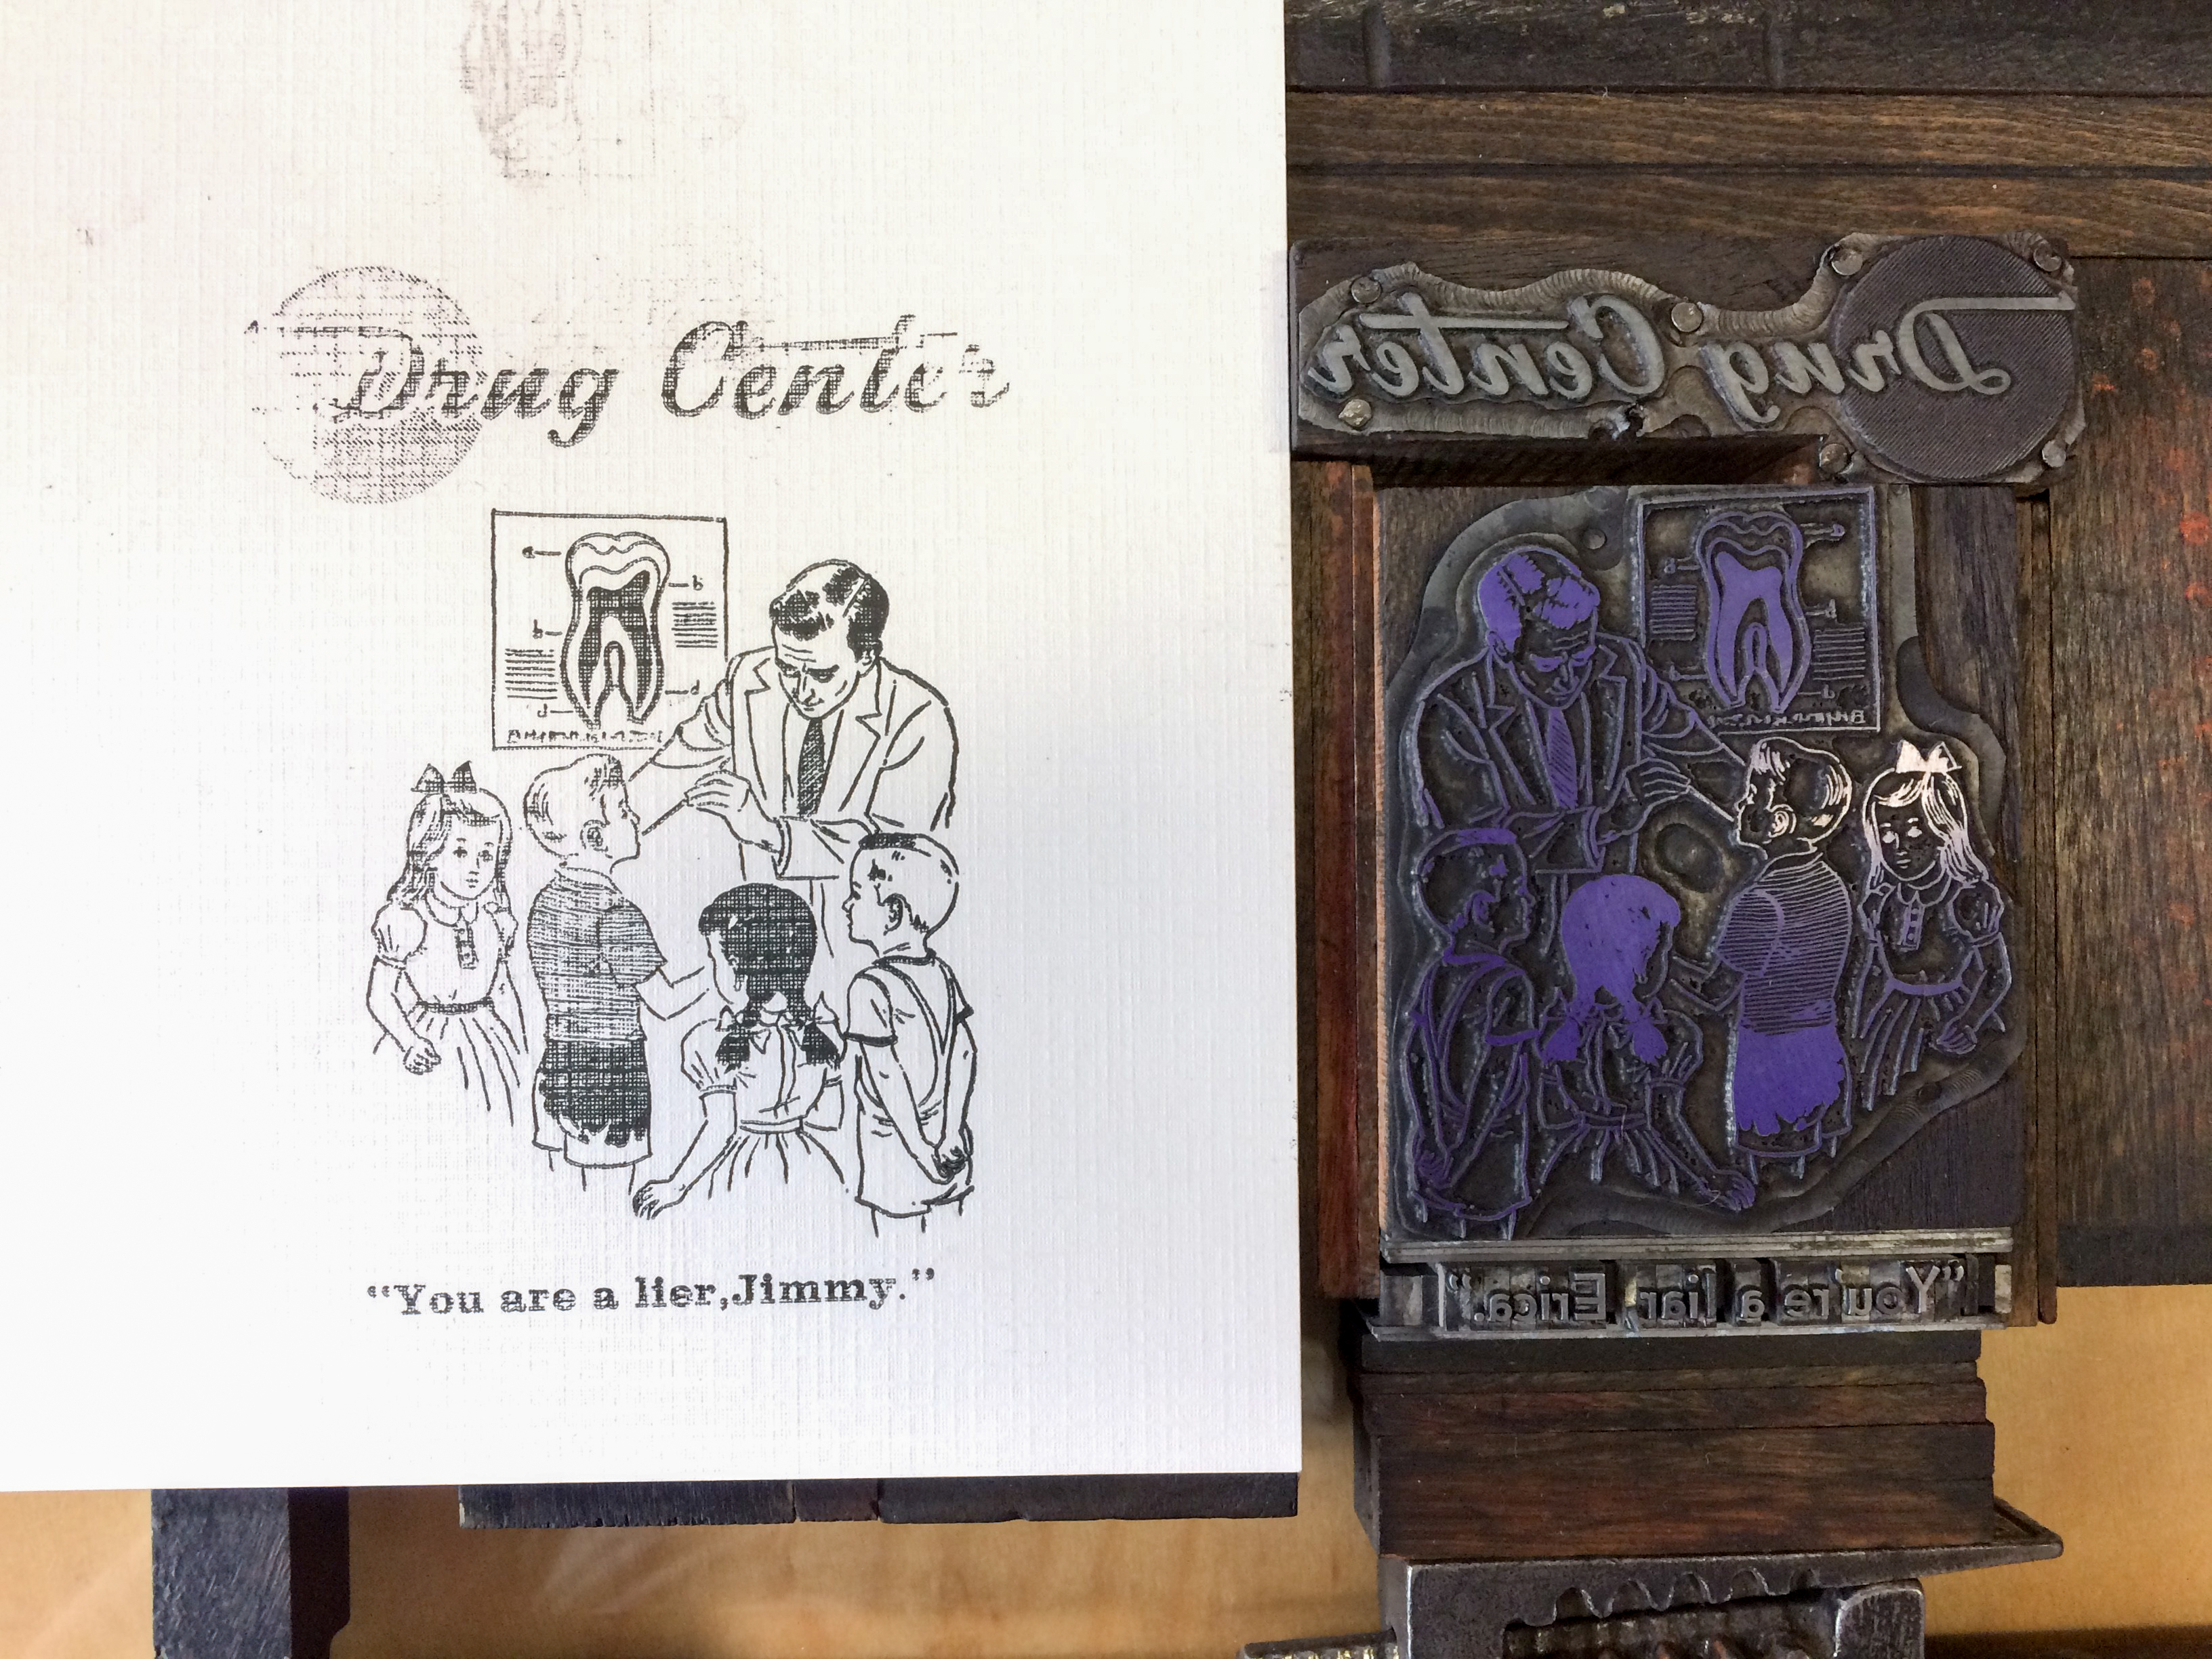 "Lockup of image and type in a letterpress chase. Has the words Drug Center with a image of a dentist and a group of children. The type underneath the image reads ""You're a liar, Jimmy"""